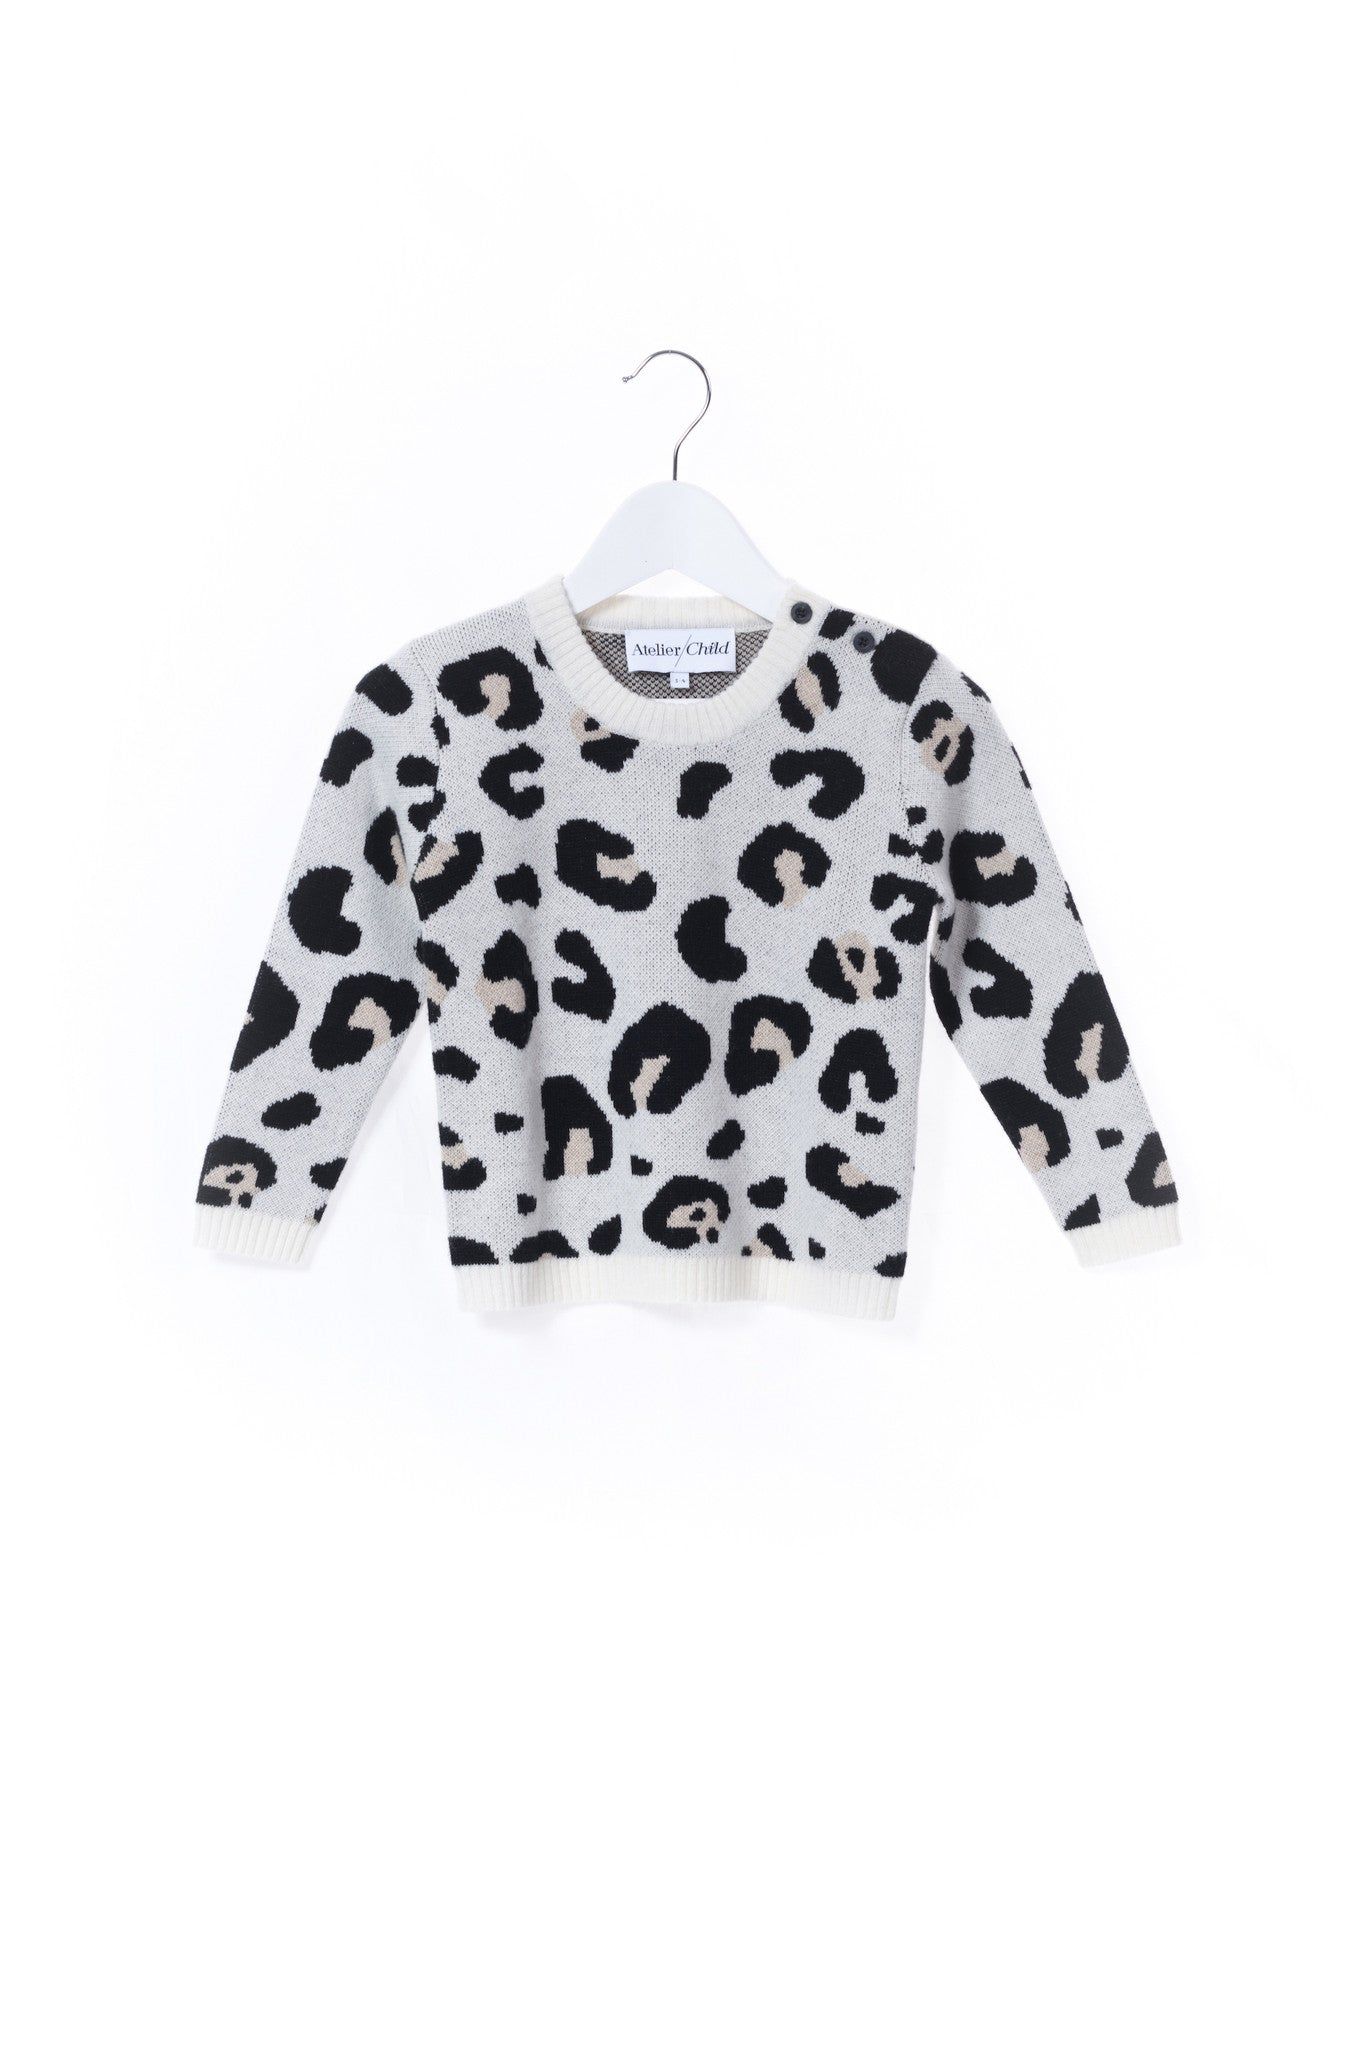 10001010 Atelier/Child Kids~Sweater 3T at Retykle